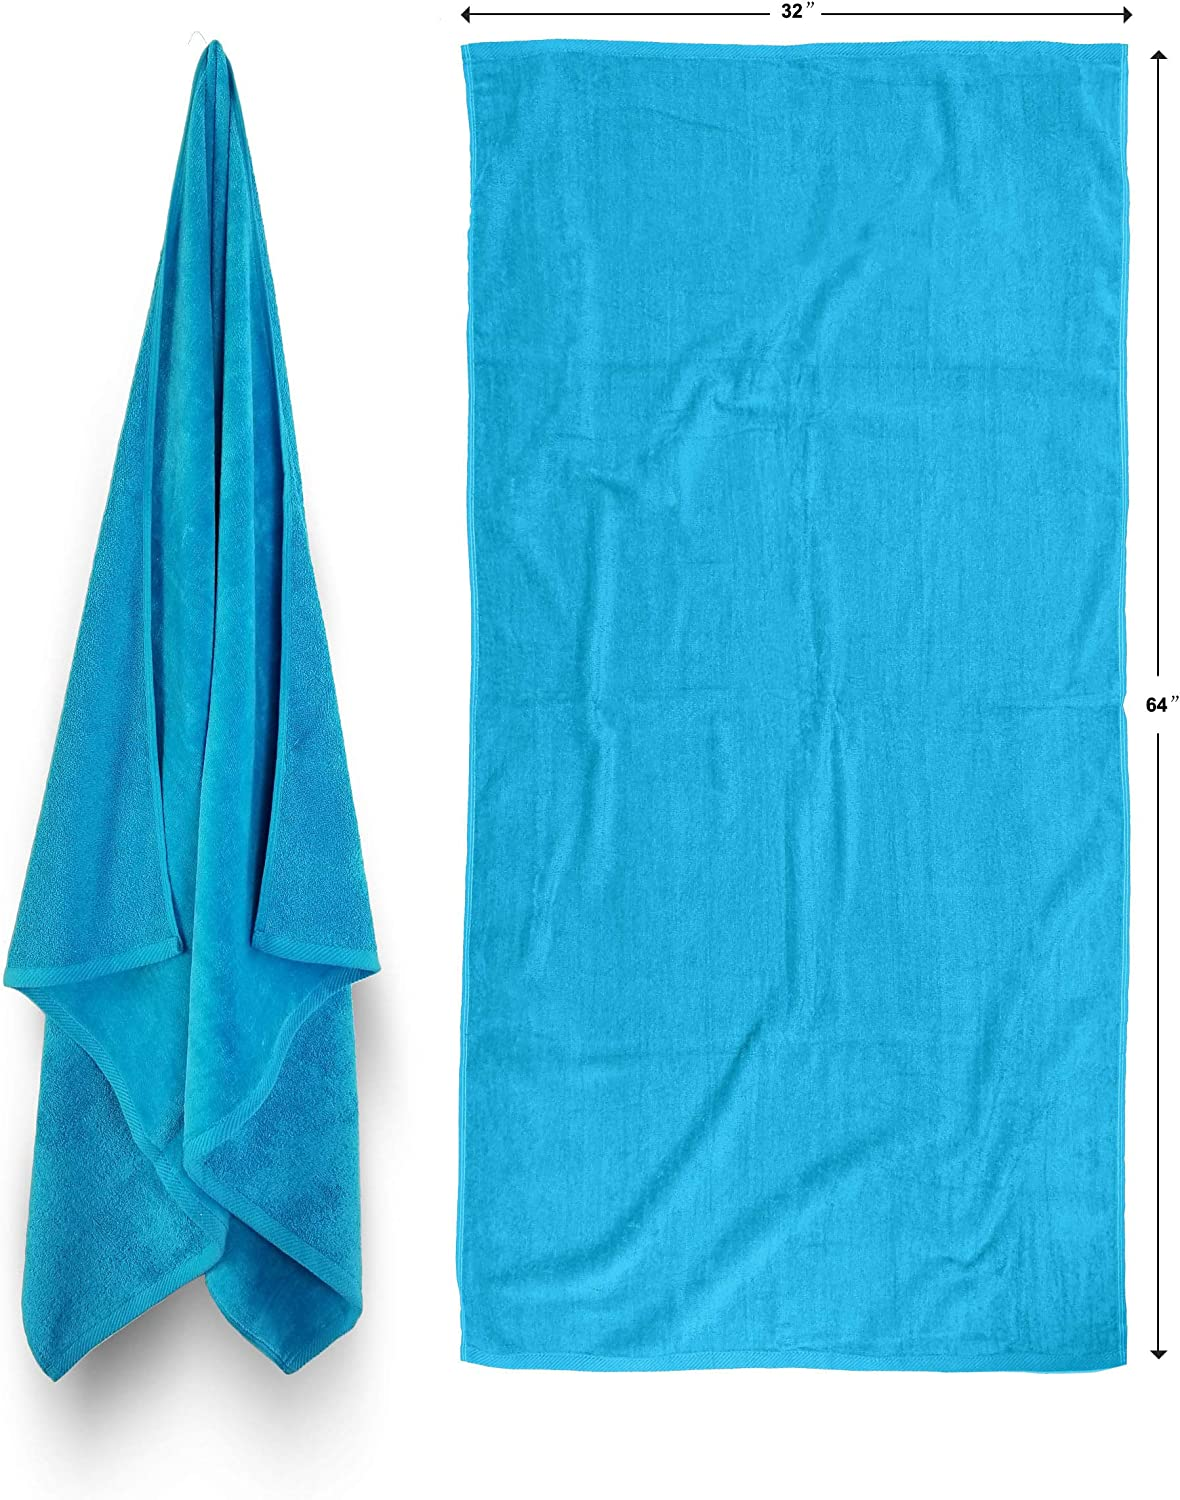 Now free shipping Royal Comfort 32x64 Solid Color Turquoise Animer and price revision 2 per Pack Terry Vel